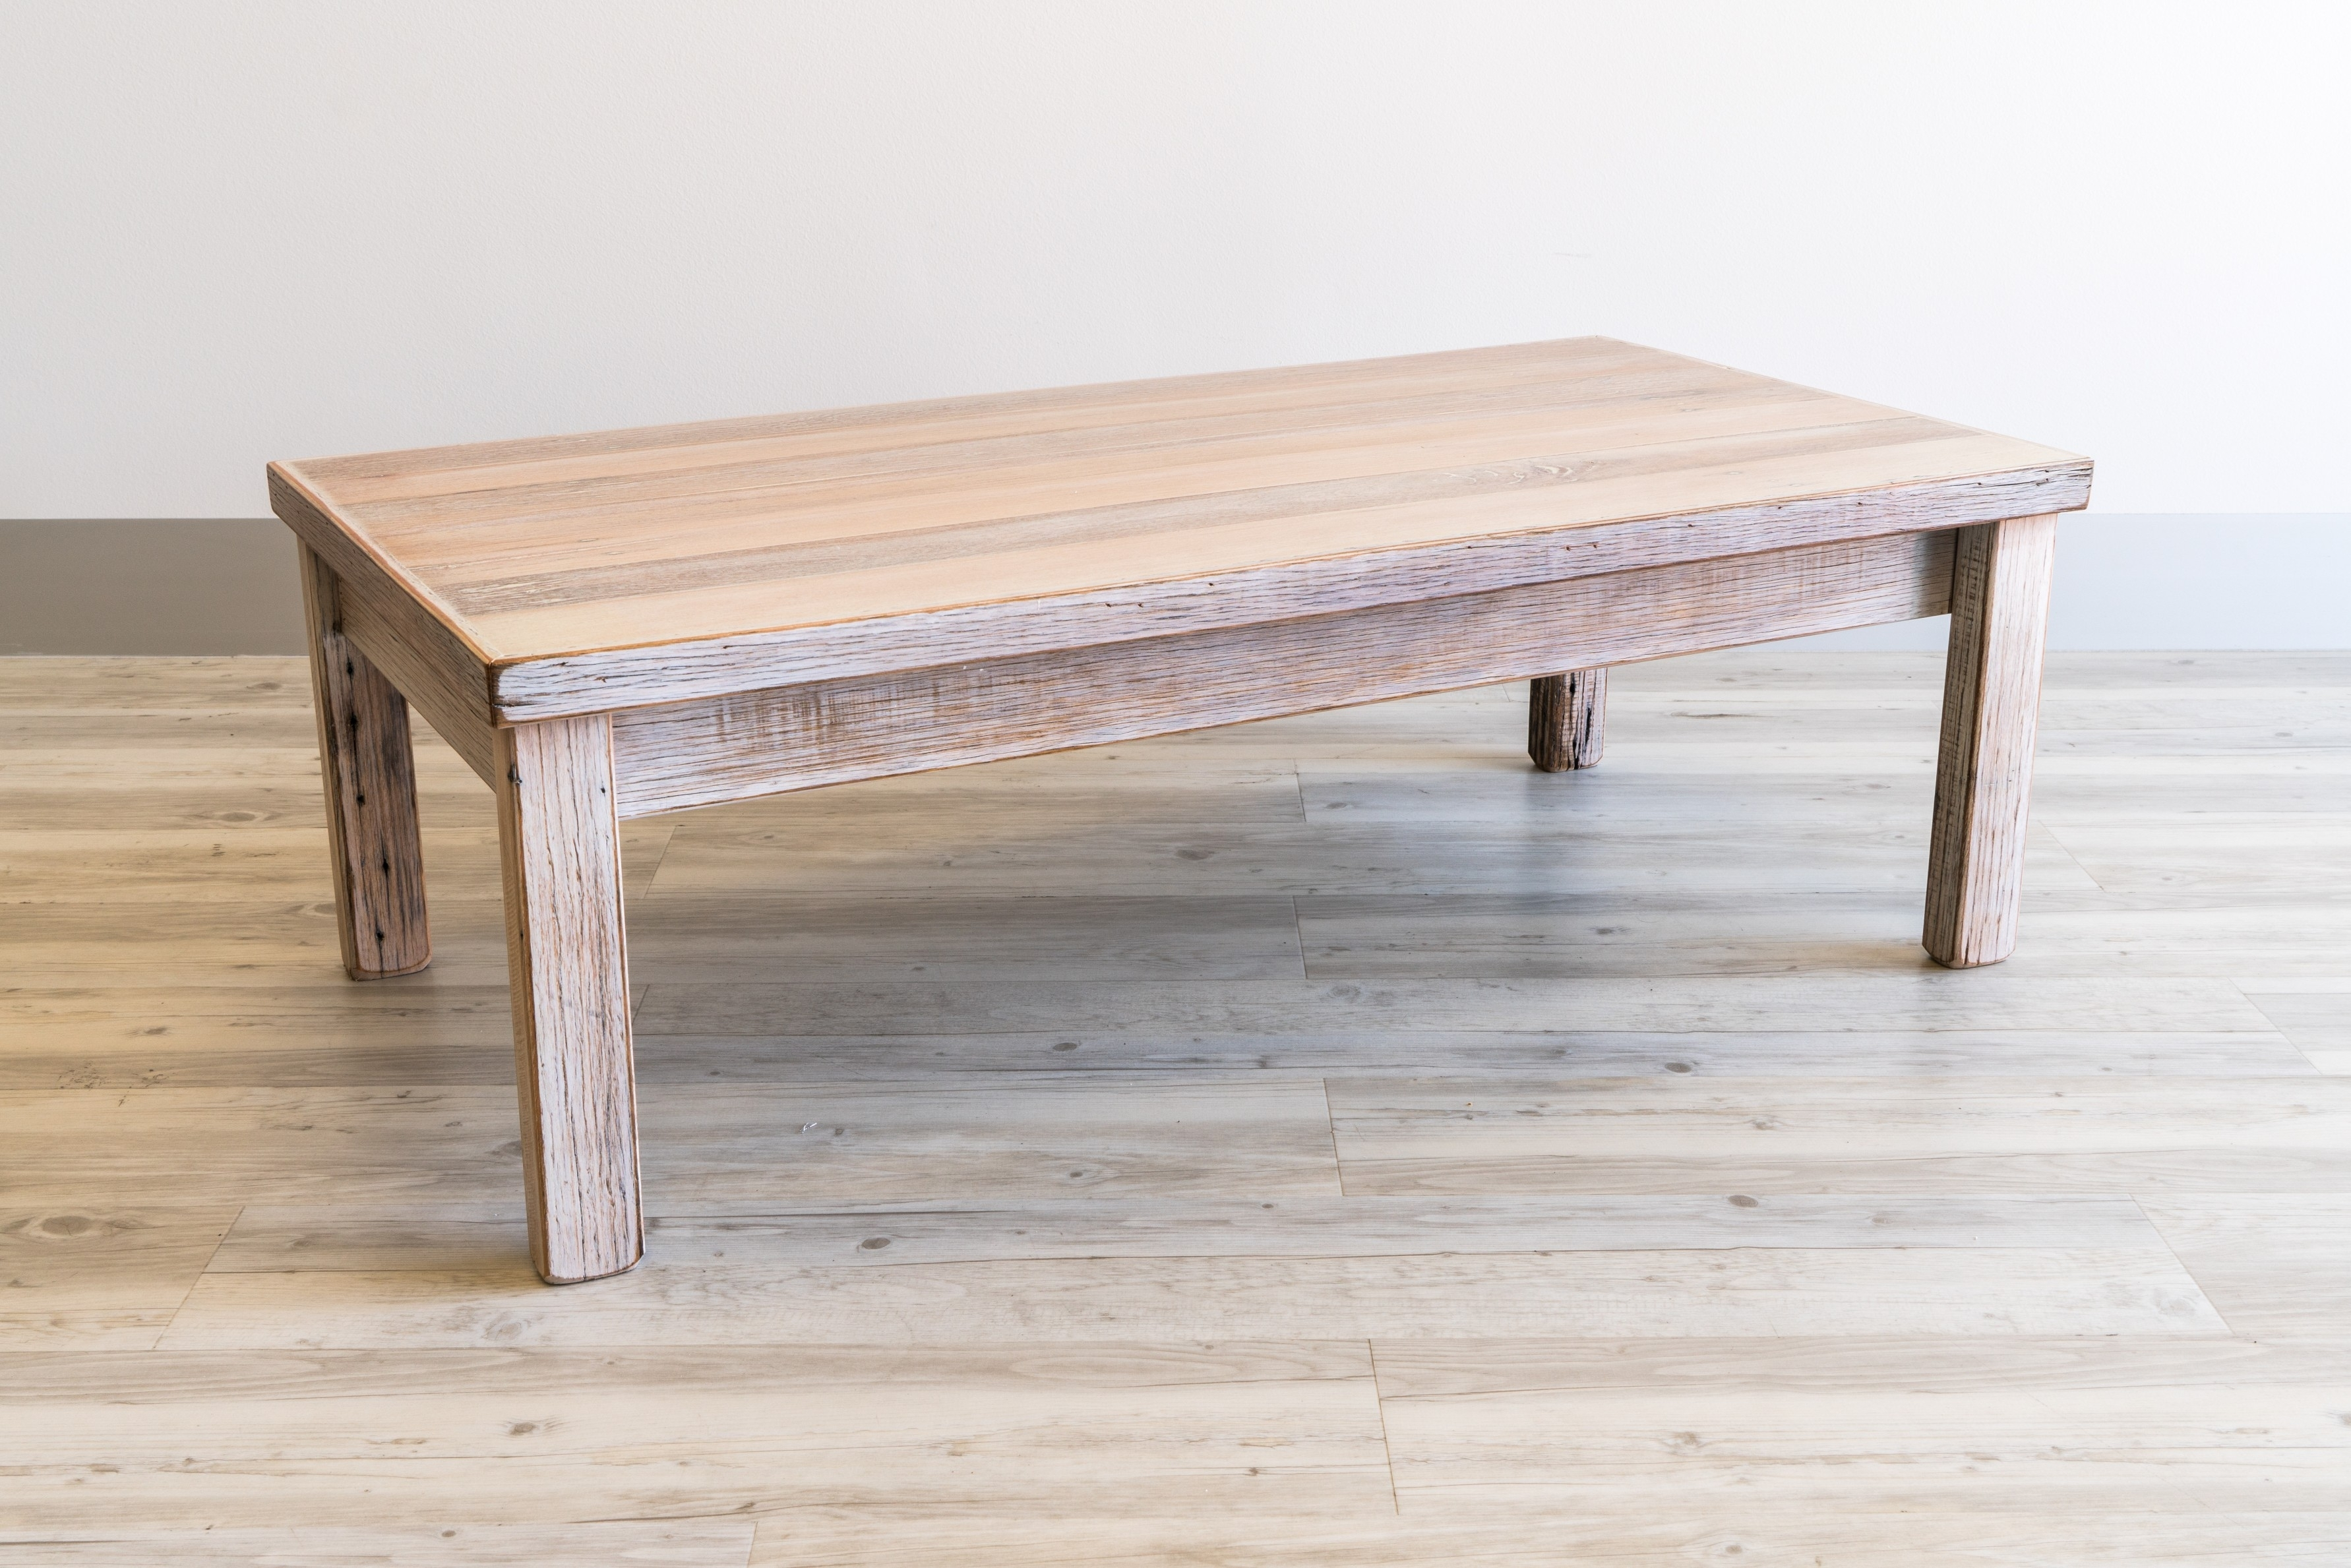 Recycled Fence Paling Coffee Table - Limewash | Beck Urban Furniture for Limewash Coffee Tables (Image 26 of 30)